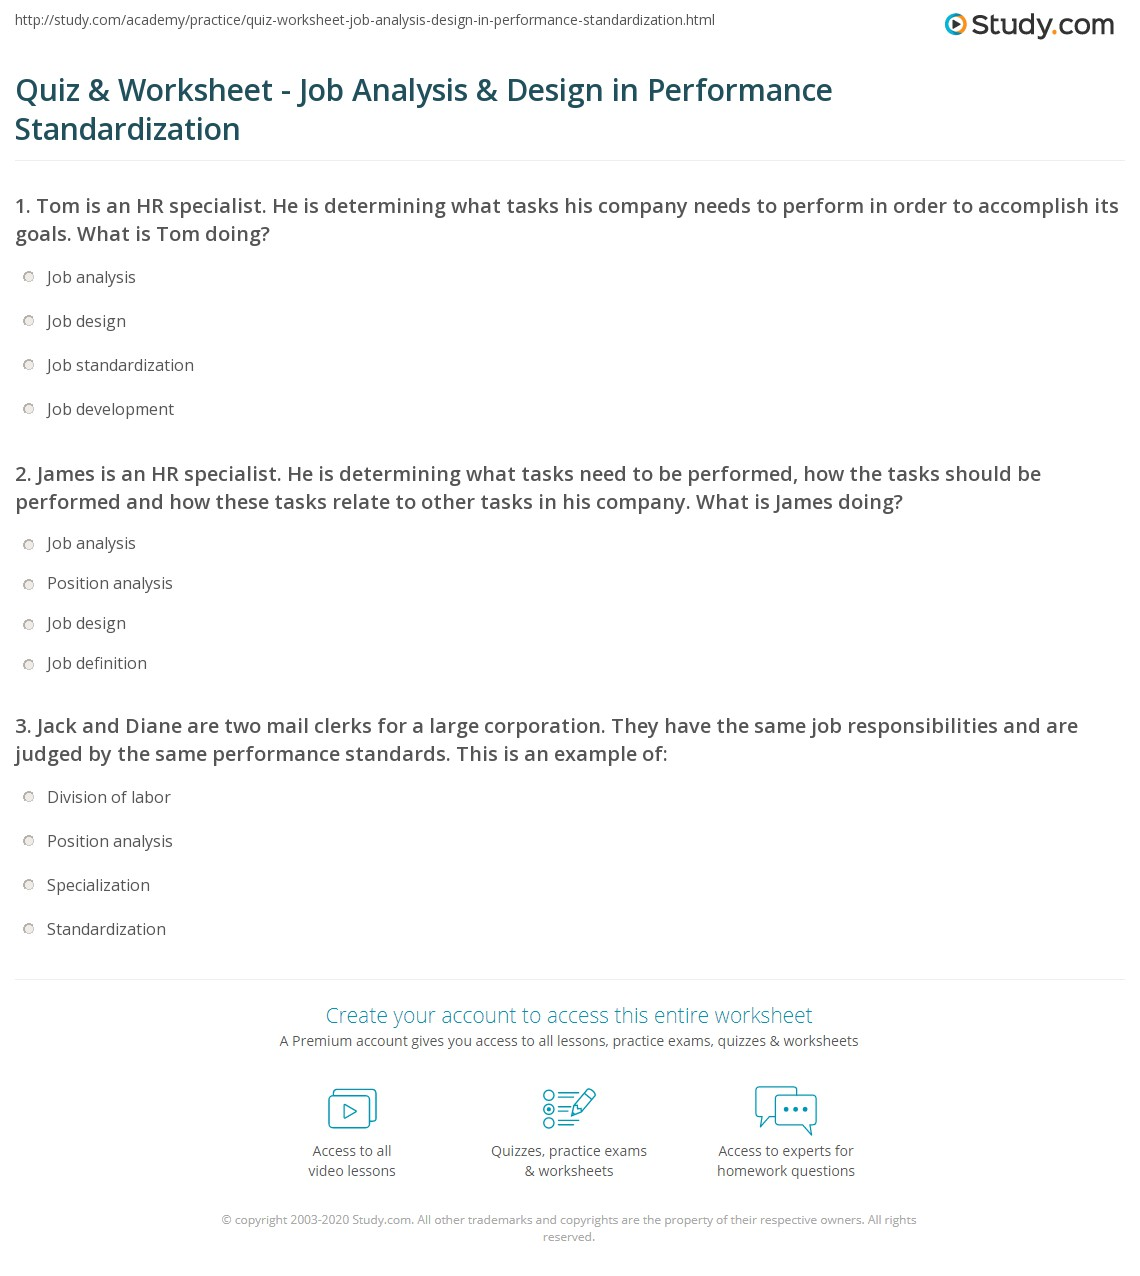 quiz worksheet job analysis design in performance print analysis design in performance standardization worksheet